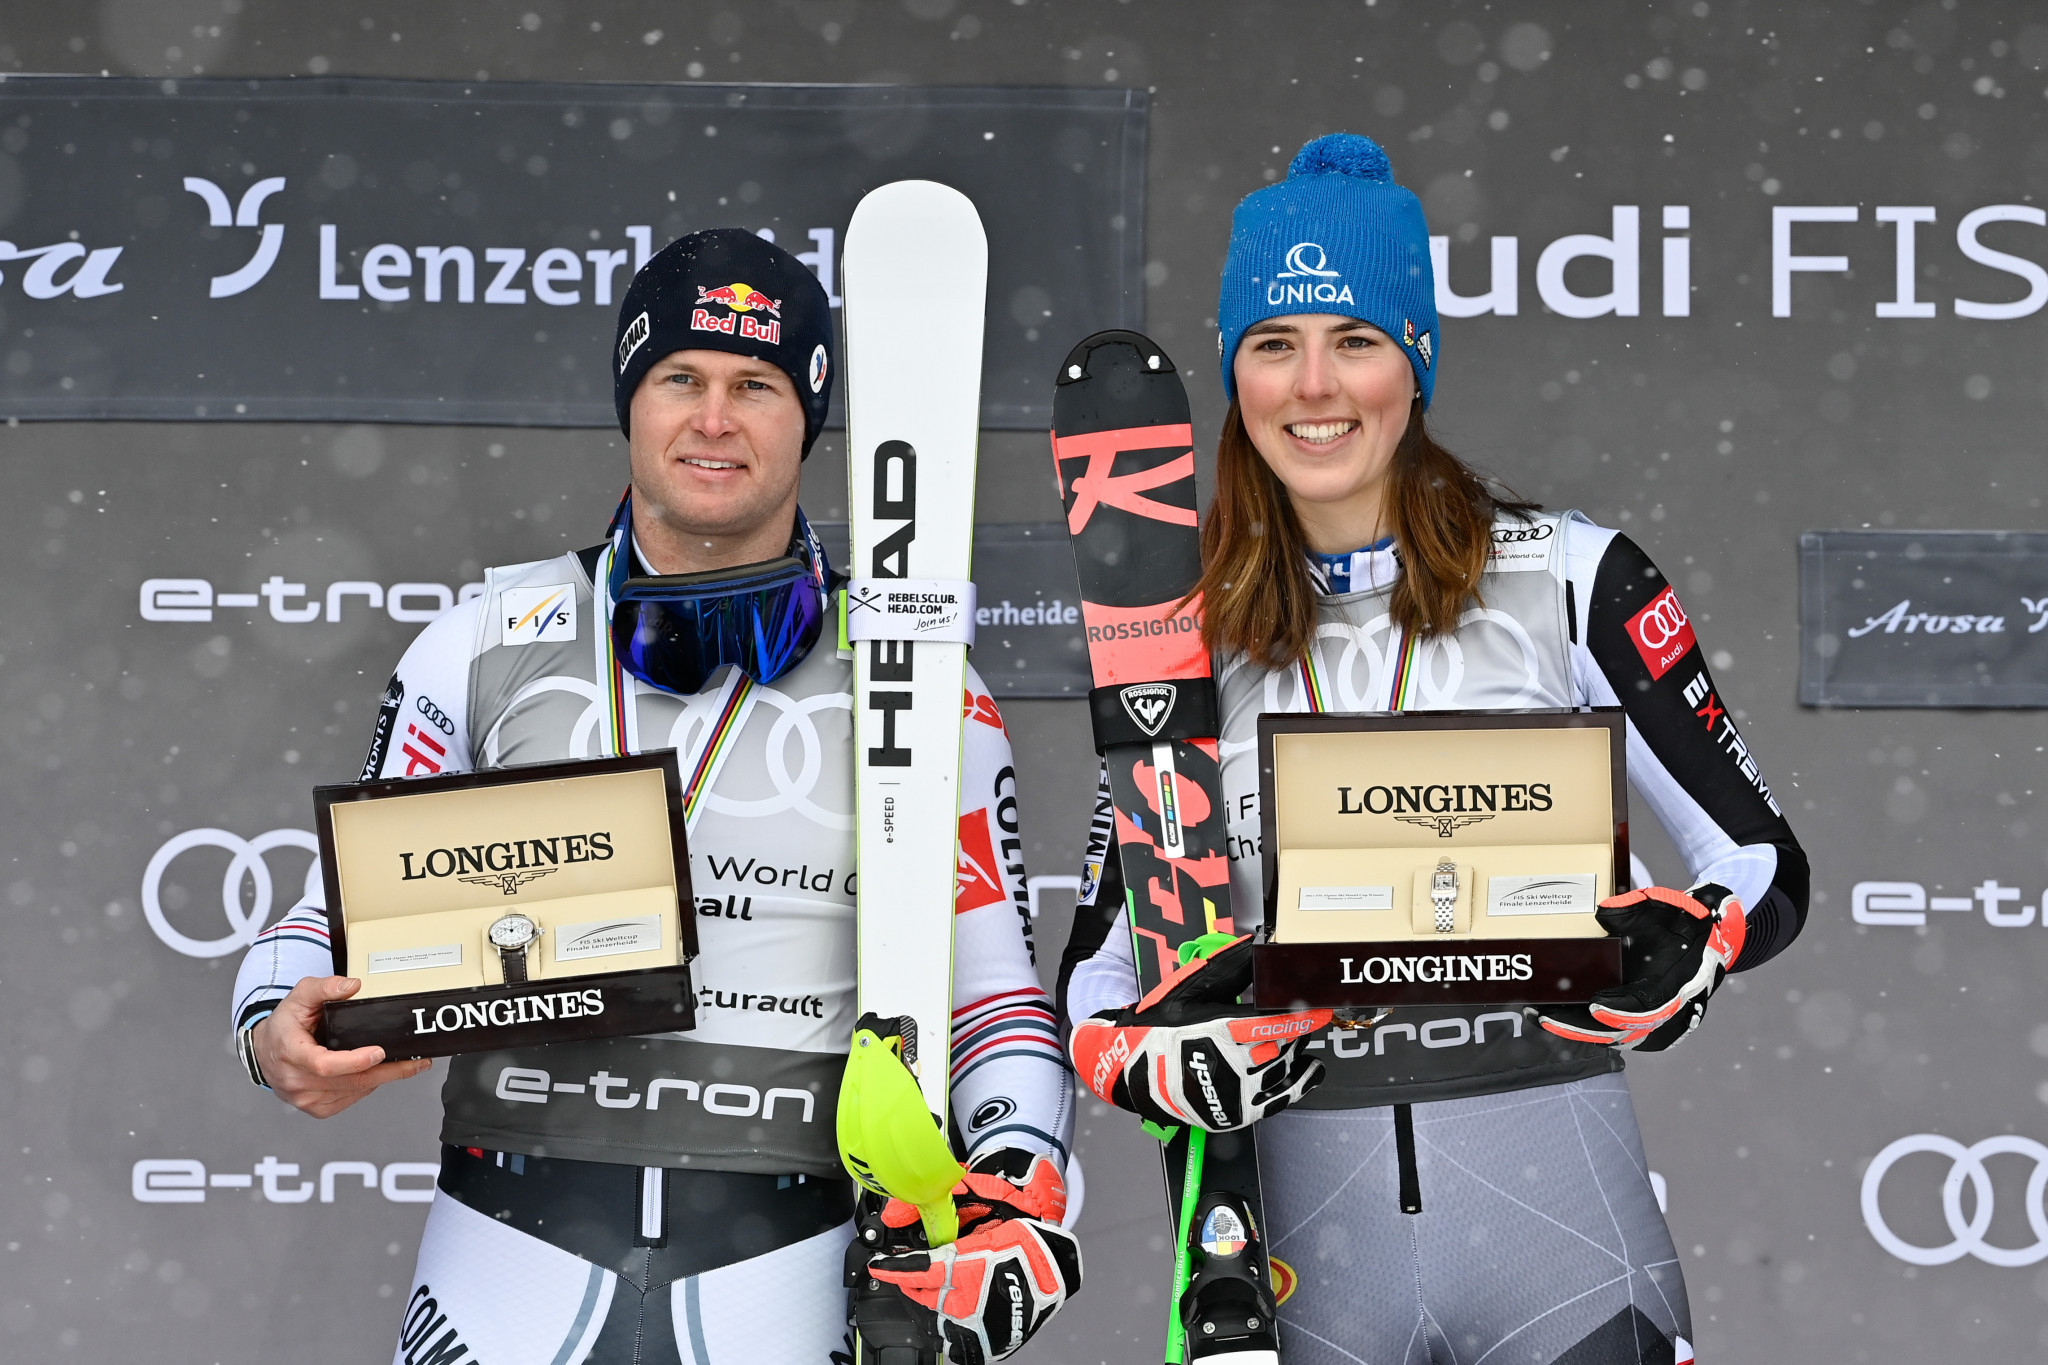 As part of the deal, Longines is expected to provide timing data at the Alpine World Ski Championships in 2023 and 2025 ©Getty Images